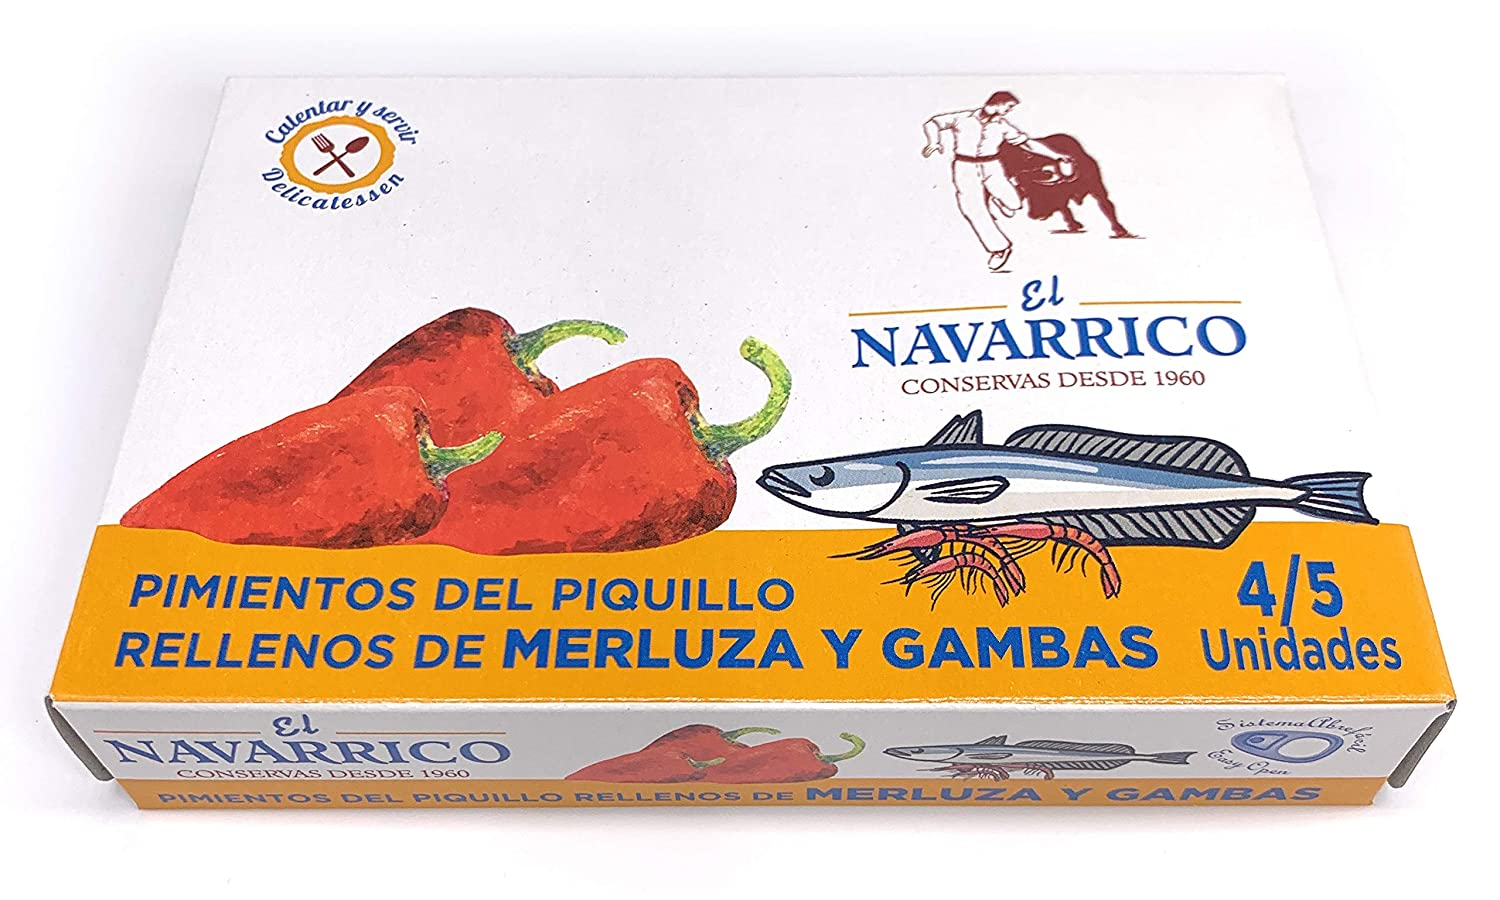 Long Beach Mall Piquillo Peppers Stuffed Pimientos Super sale period limited Rellenos de Stuff